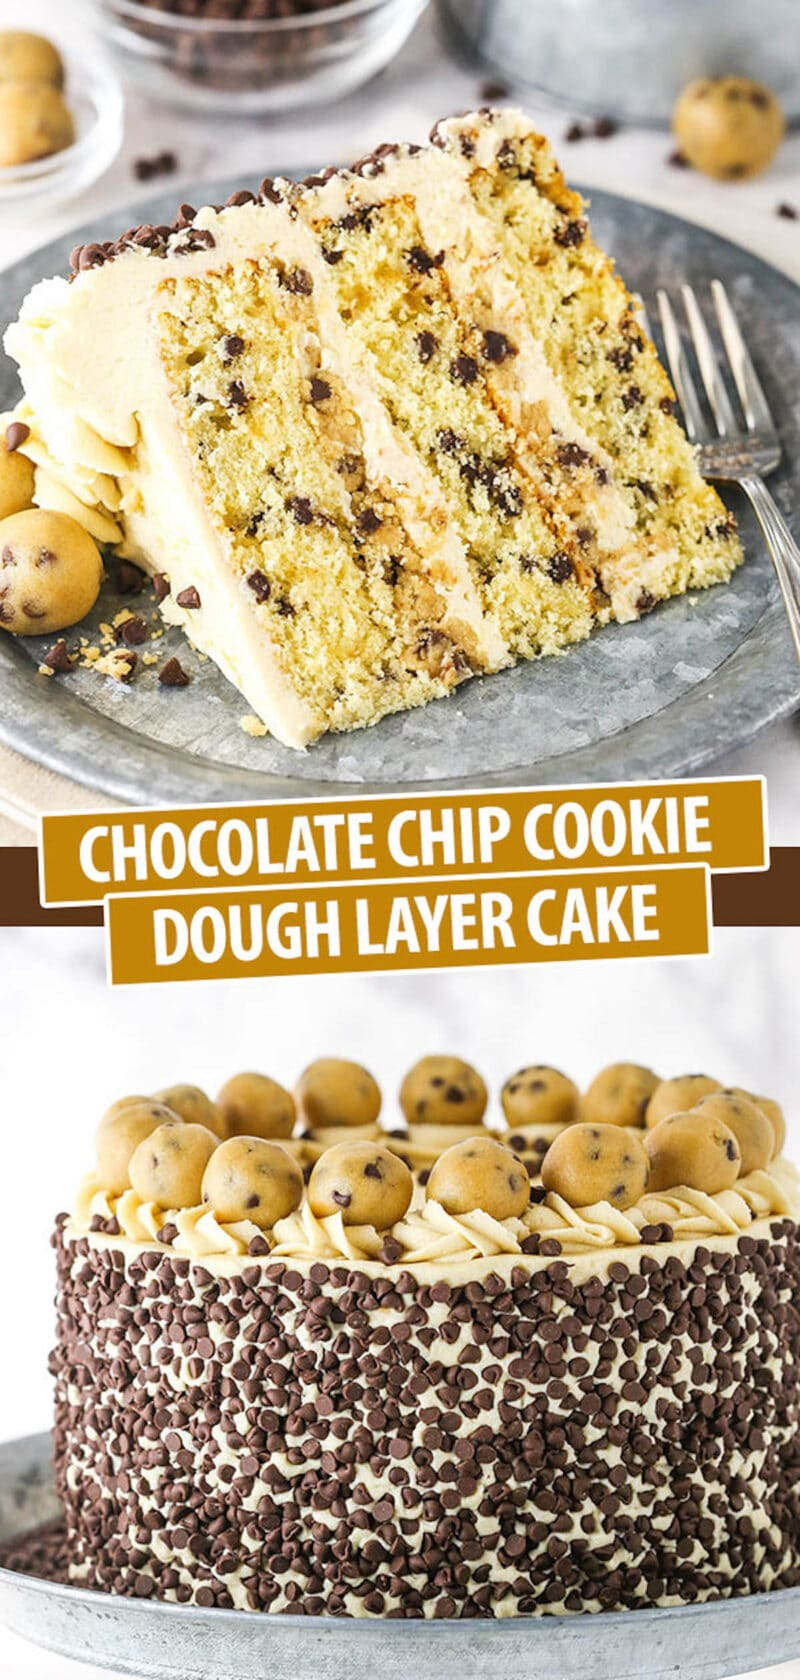 A Collage of Two Images of Chocolate Chip Cake with One Slice and One Whole Cake